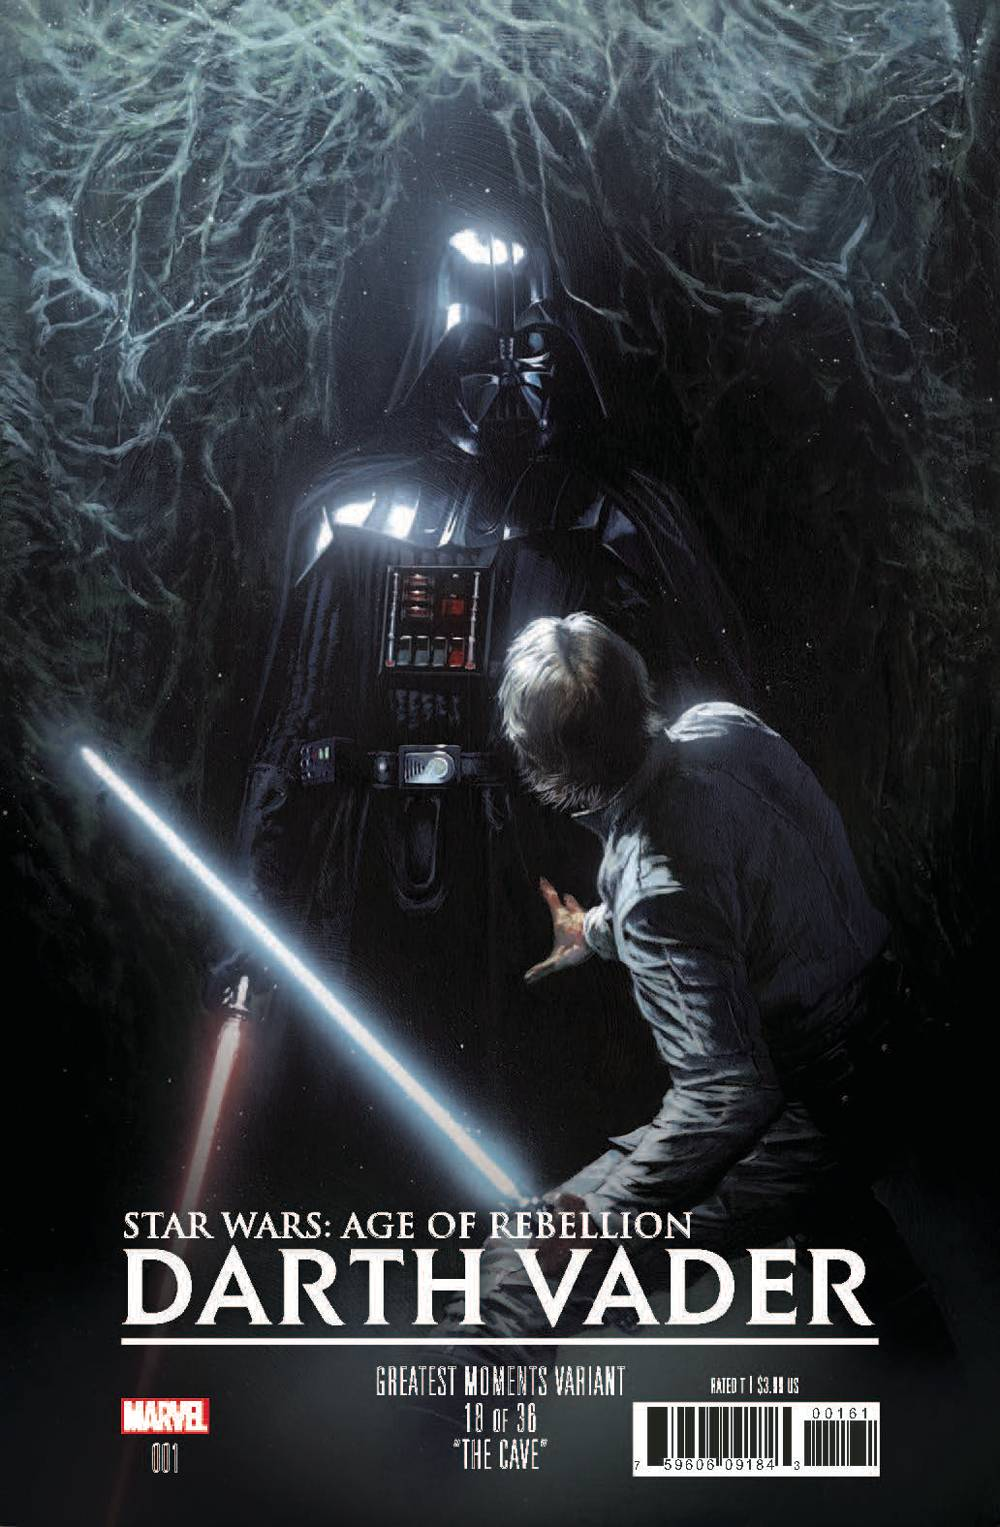 STAR WARS AOR DARTH VADER 1 DELLOTTO GREATEST MOMENTS VAR.jpg